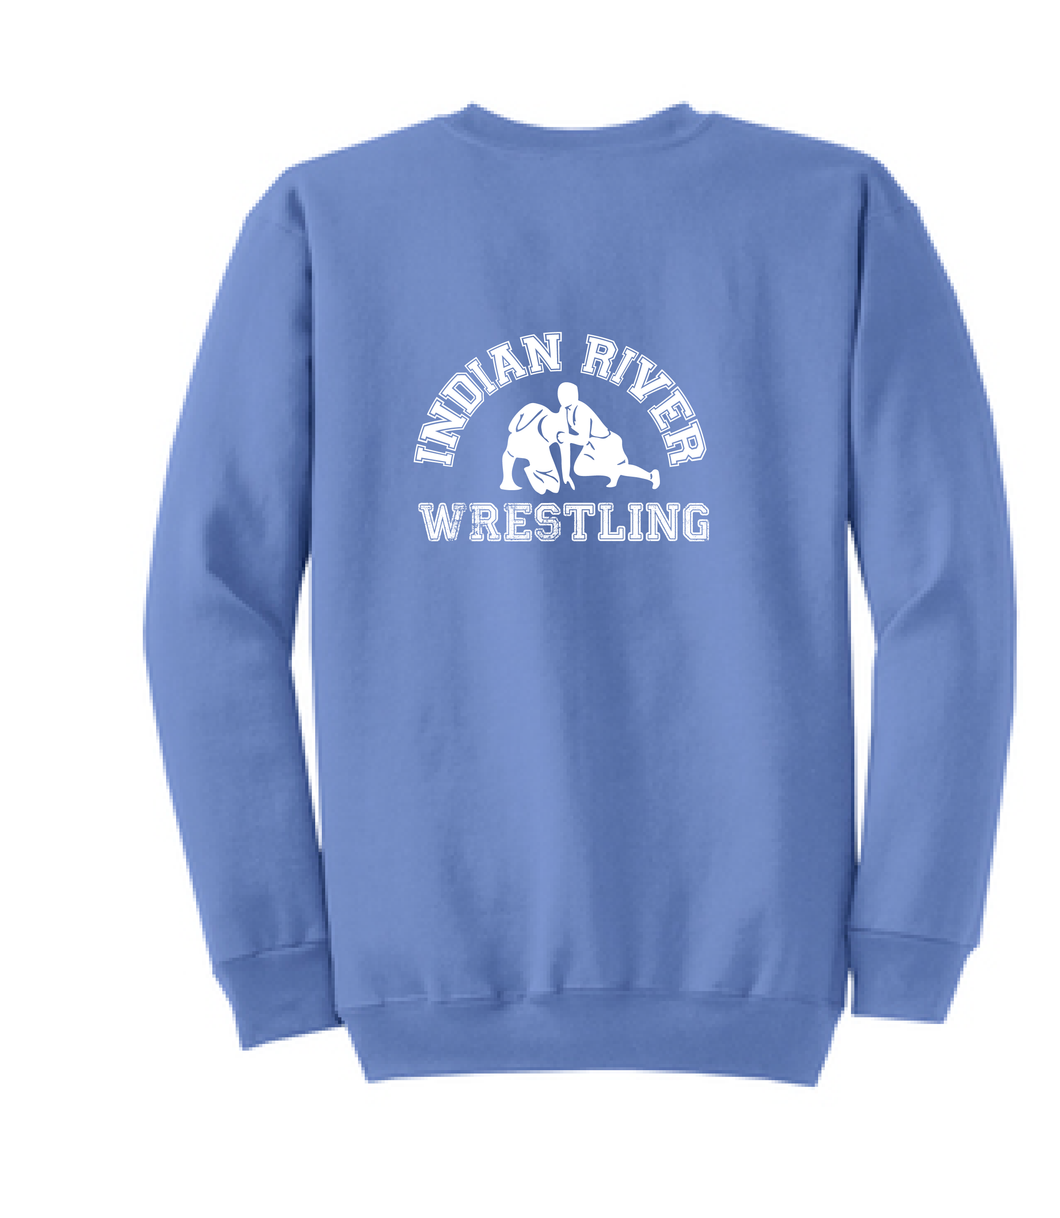 Crew neck Sweatshirt / Carolina Blue / Indian River Wrestling - Fidgety